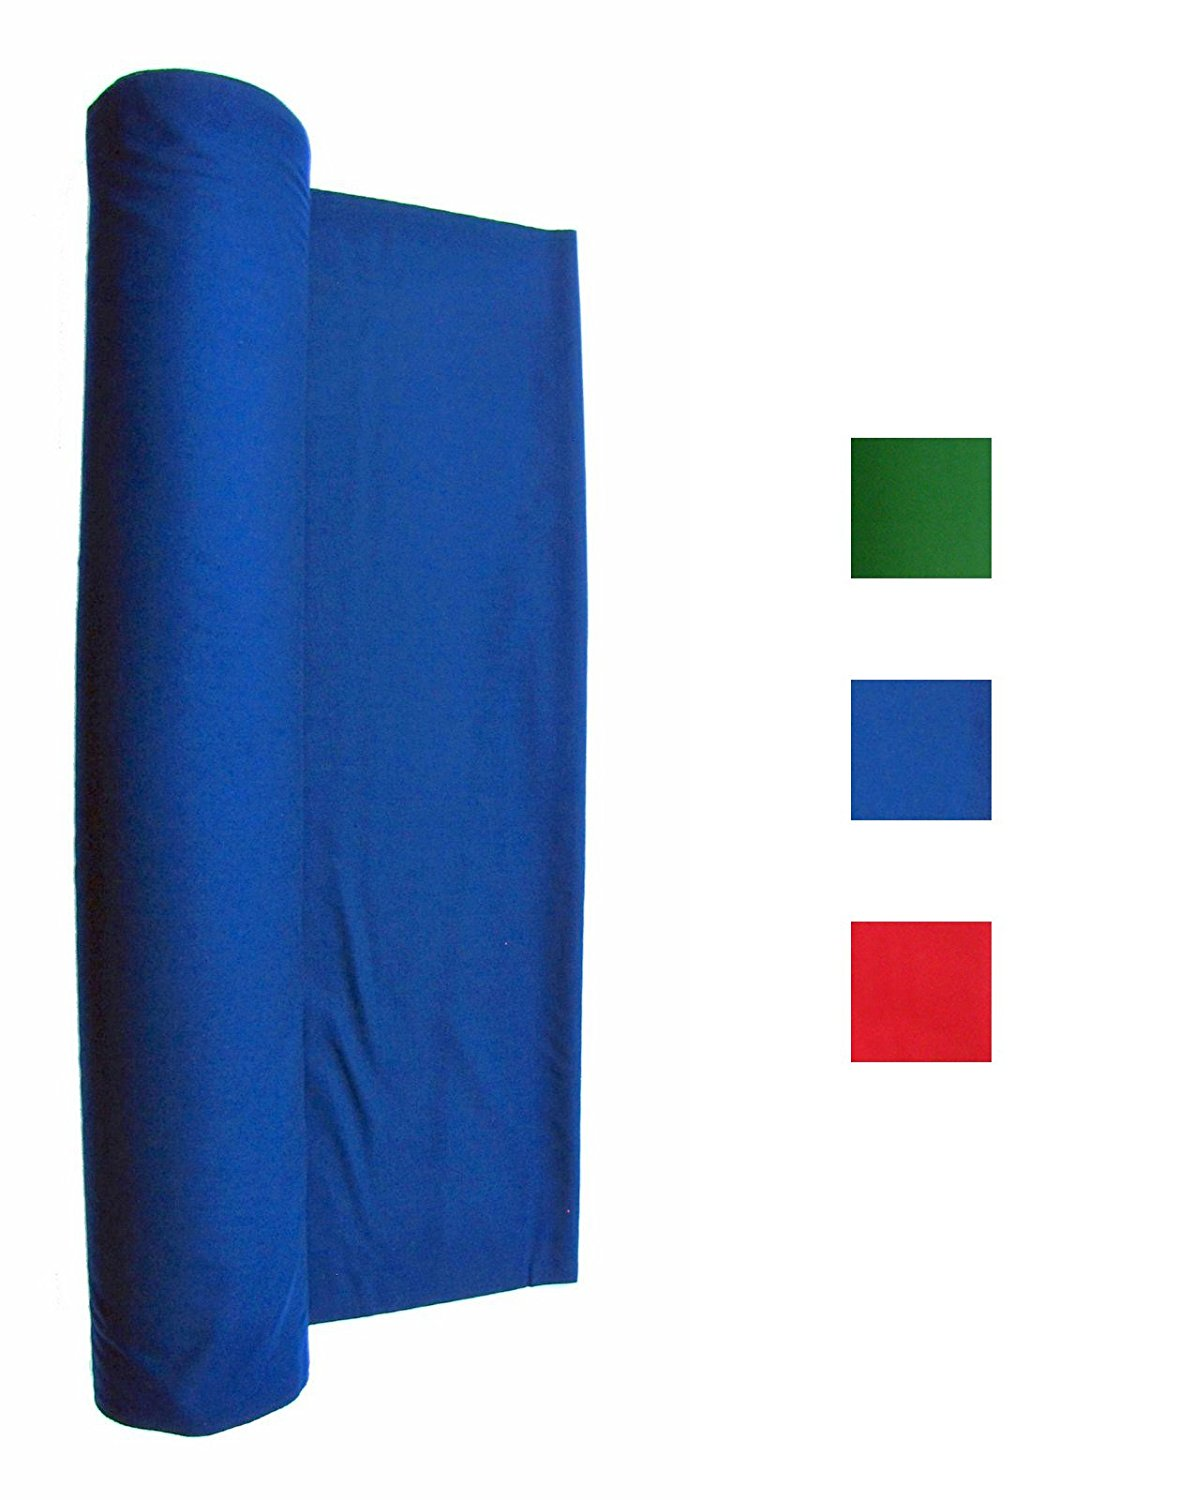 Cotton Backed Performance Grade Pool Table Felt - Billiard Cloth - For 7, 8 or 9 Foot Table English Green, Blue or Red